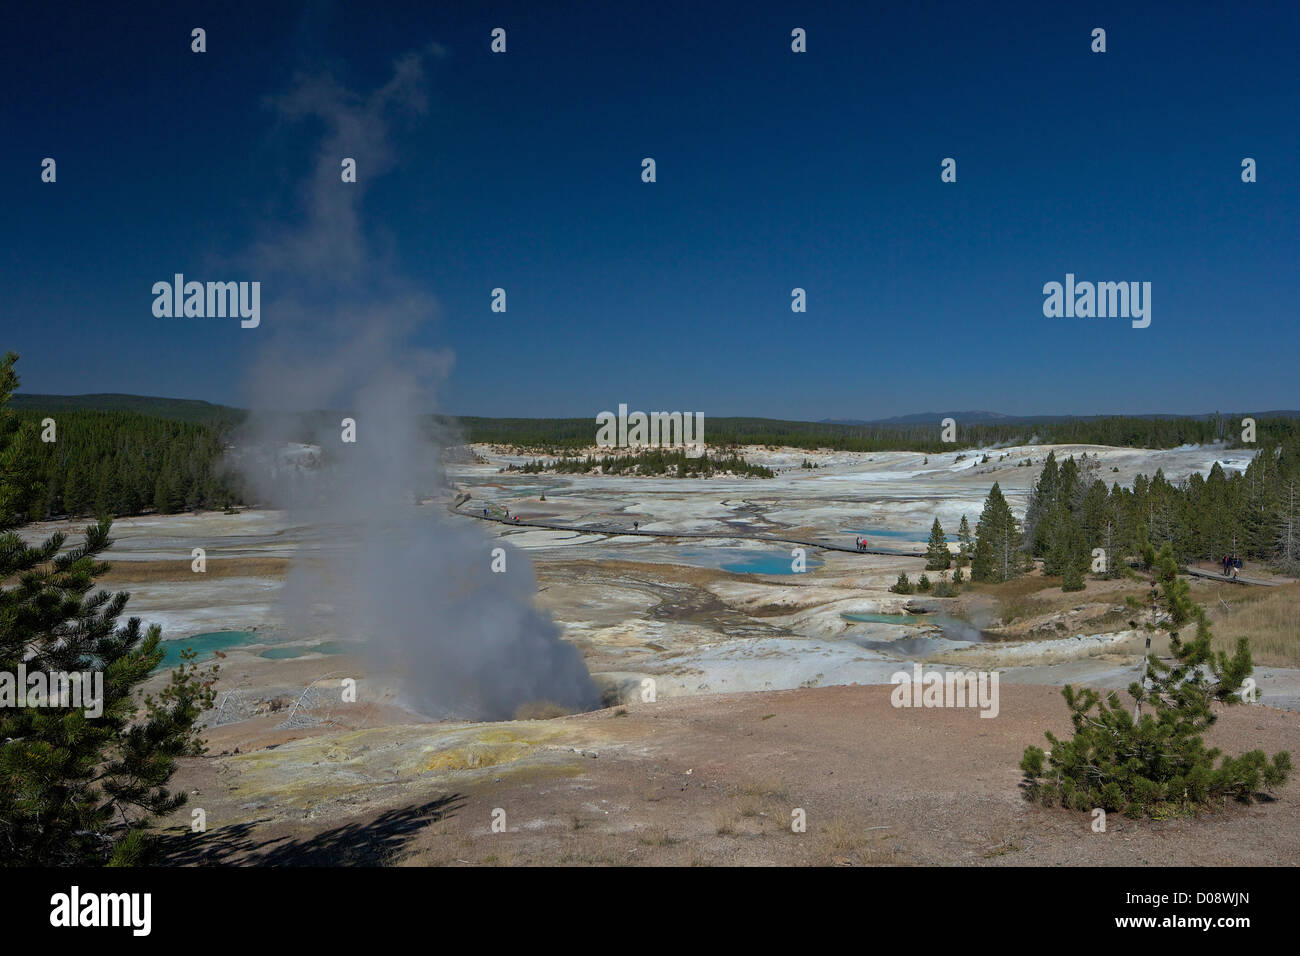 Black Growler Steam Vent in Porcelain Basin, Norris Geyser Basin, Yellowstone National Park, Wyoming, USA Stock Photo